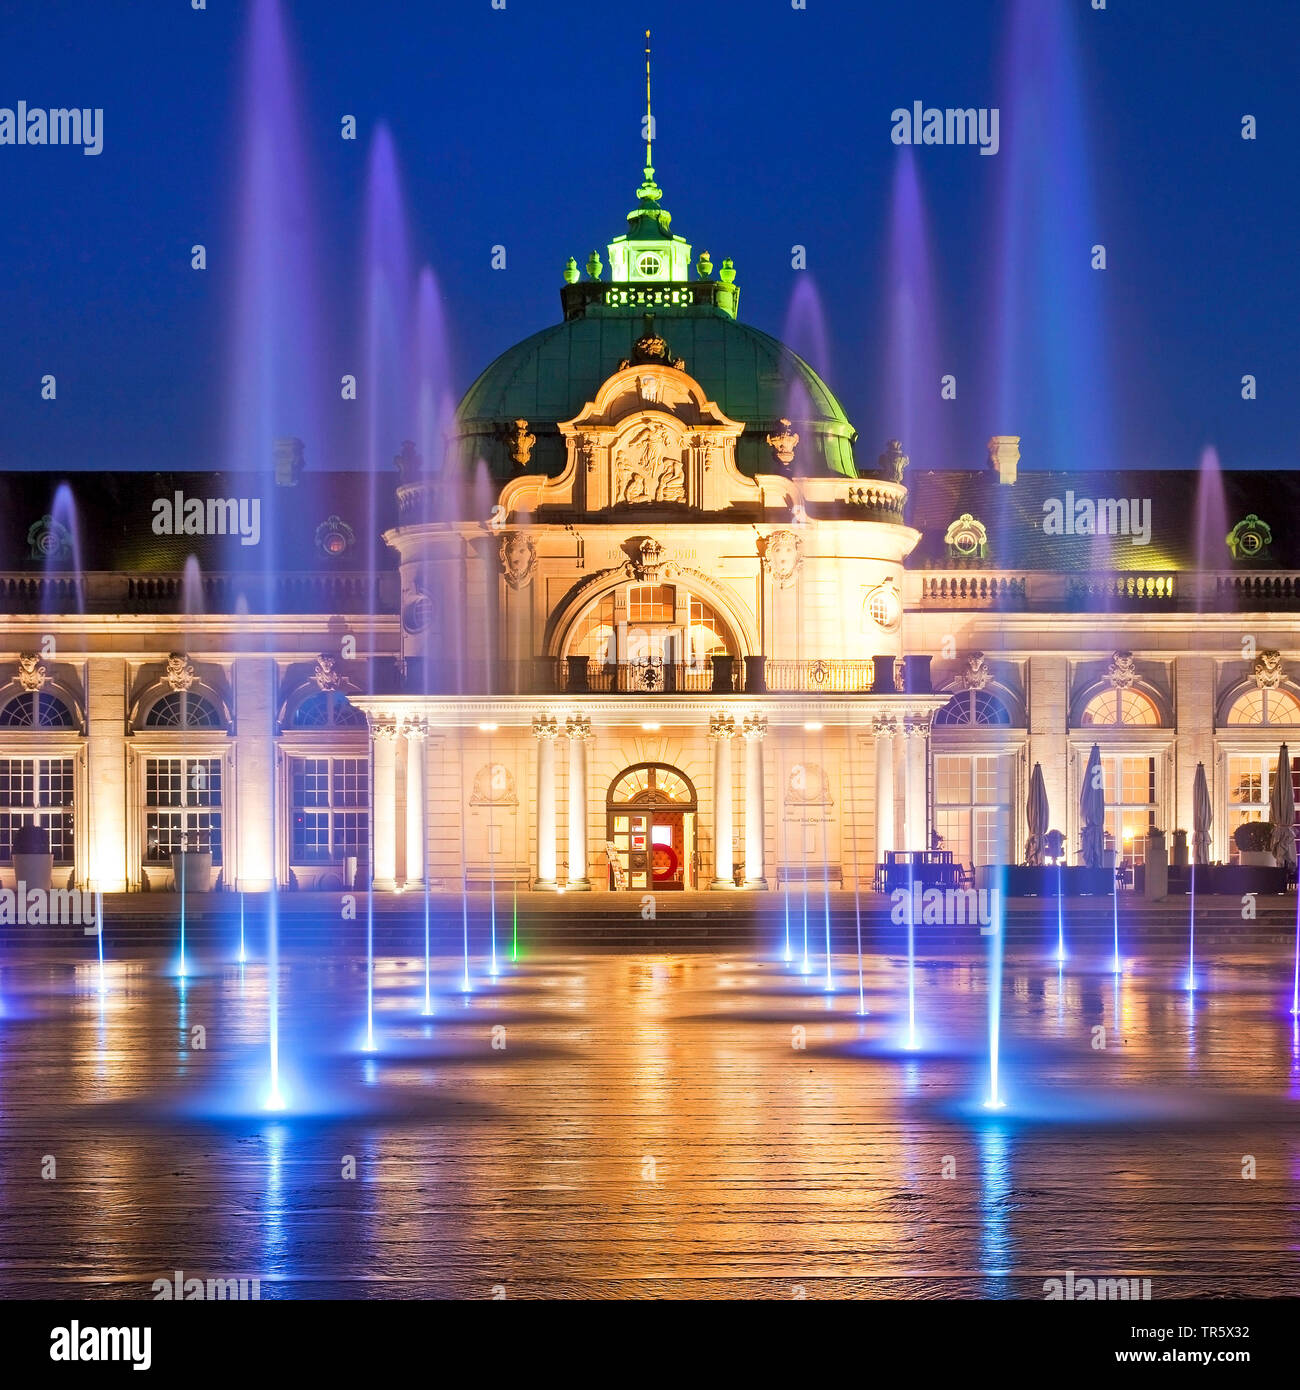 illuminated Kaiserpalais with mit water columns in the spa park at blue hour, Germany, North Rhine-Westphalia, East Westphalia, Bad Oeynhausen Stock Photo